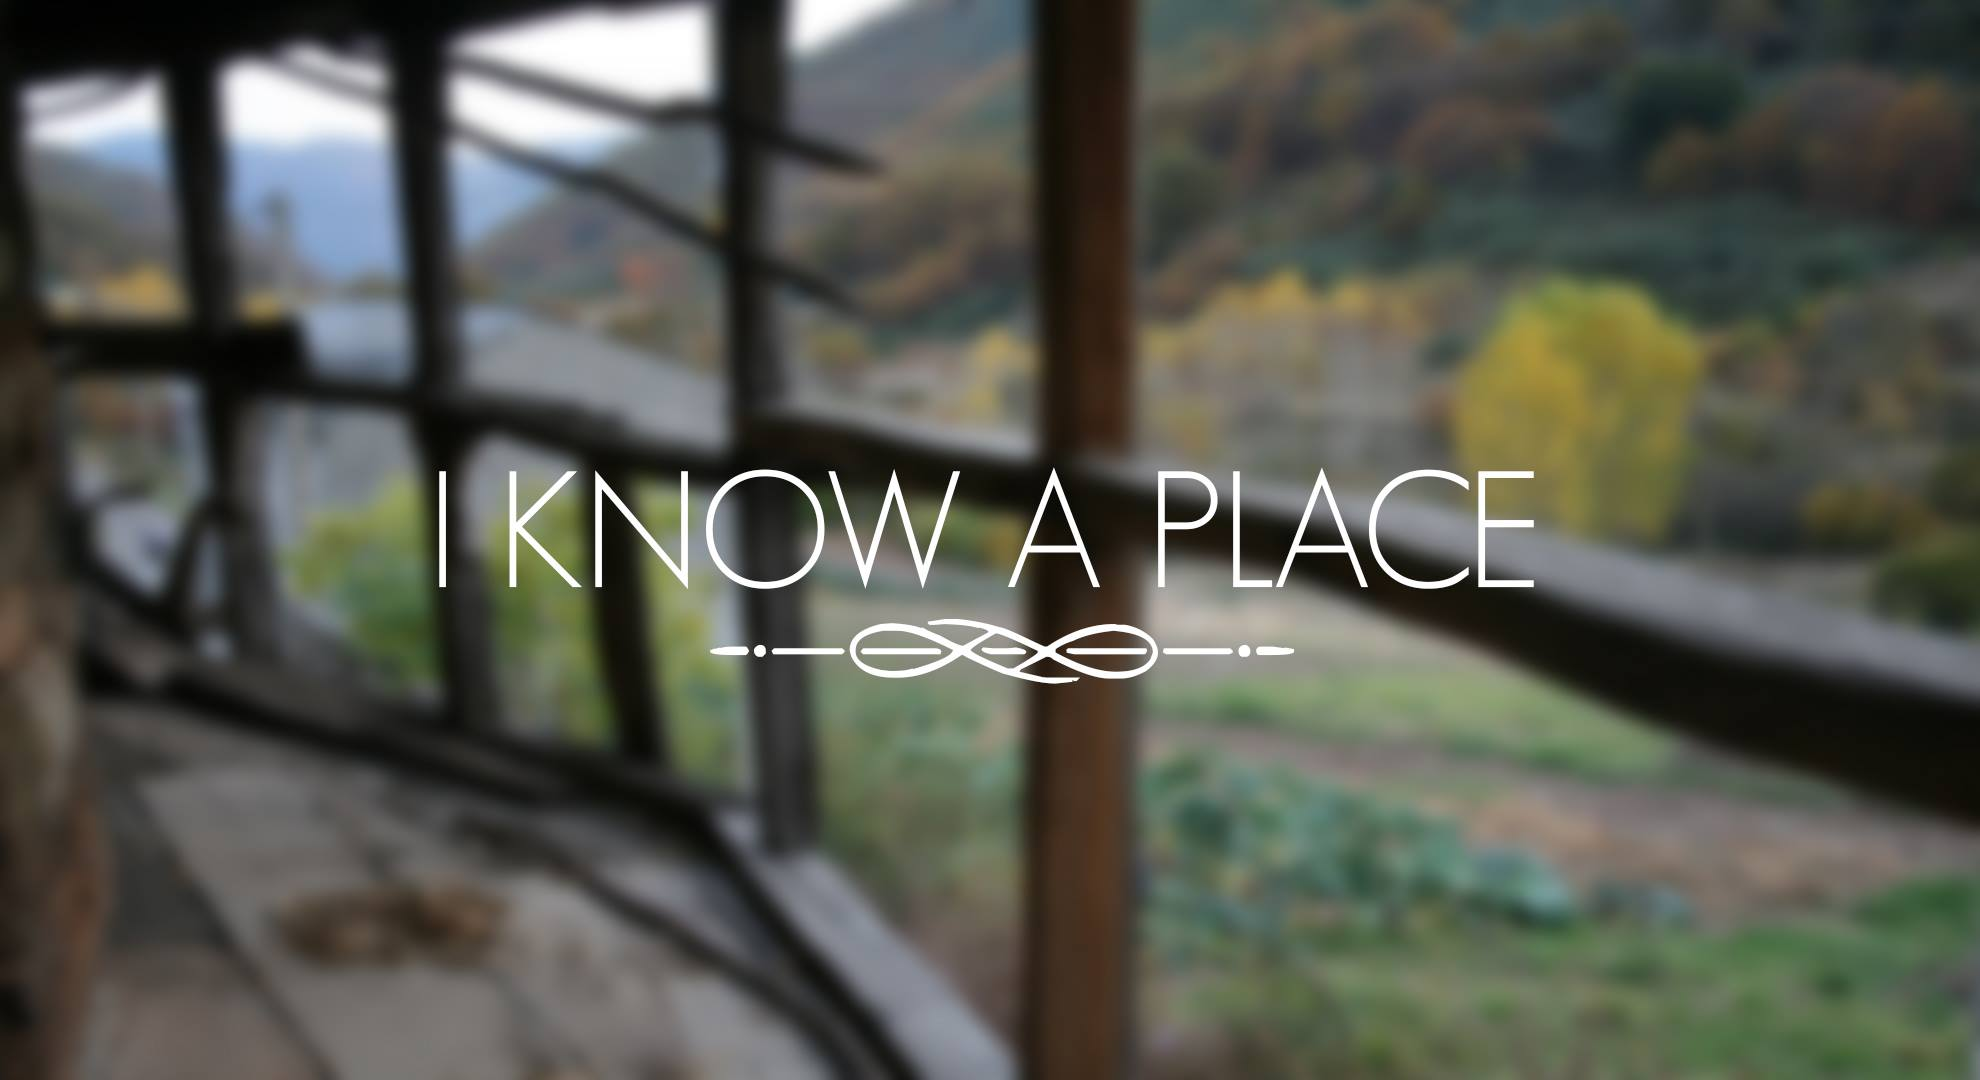 , I KNOW A PLACE – DOCUMENTAL COMPLETO